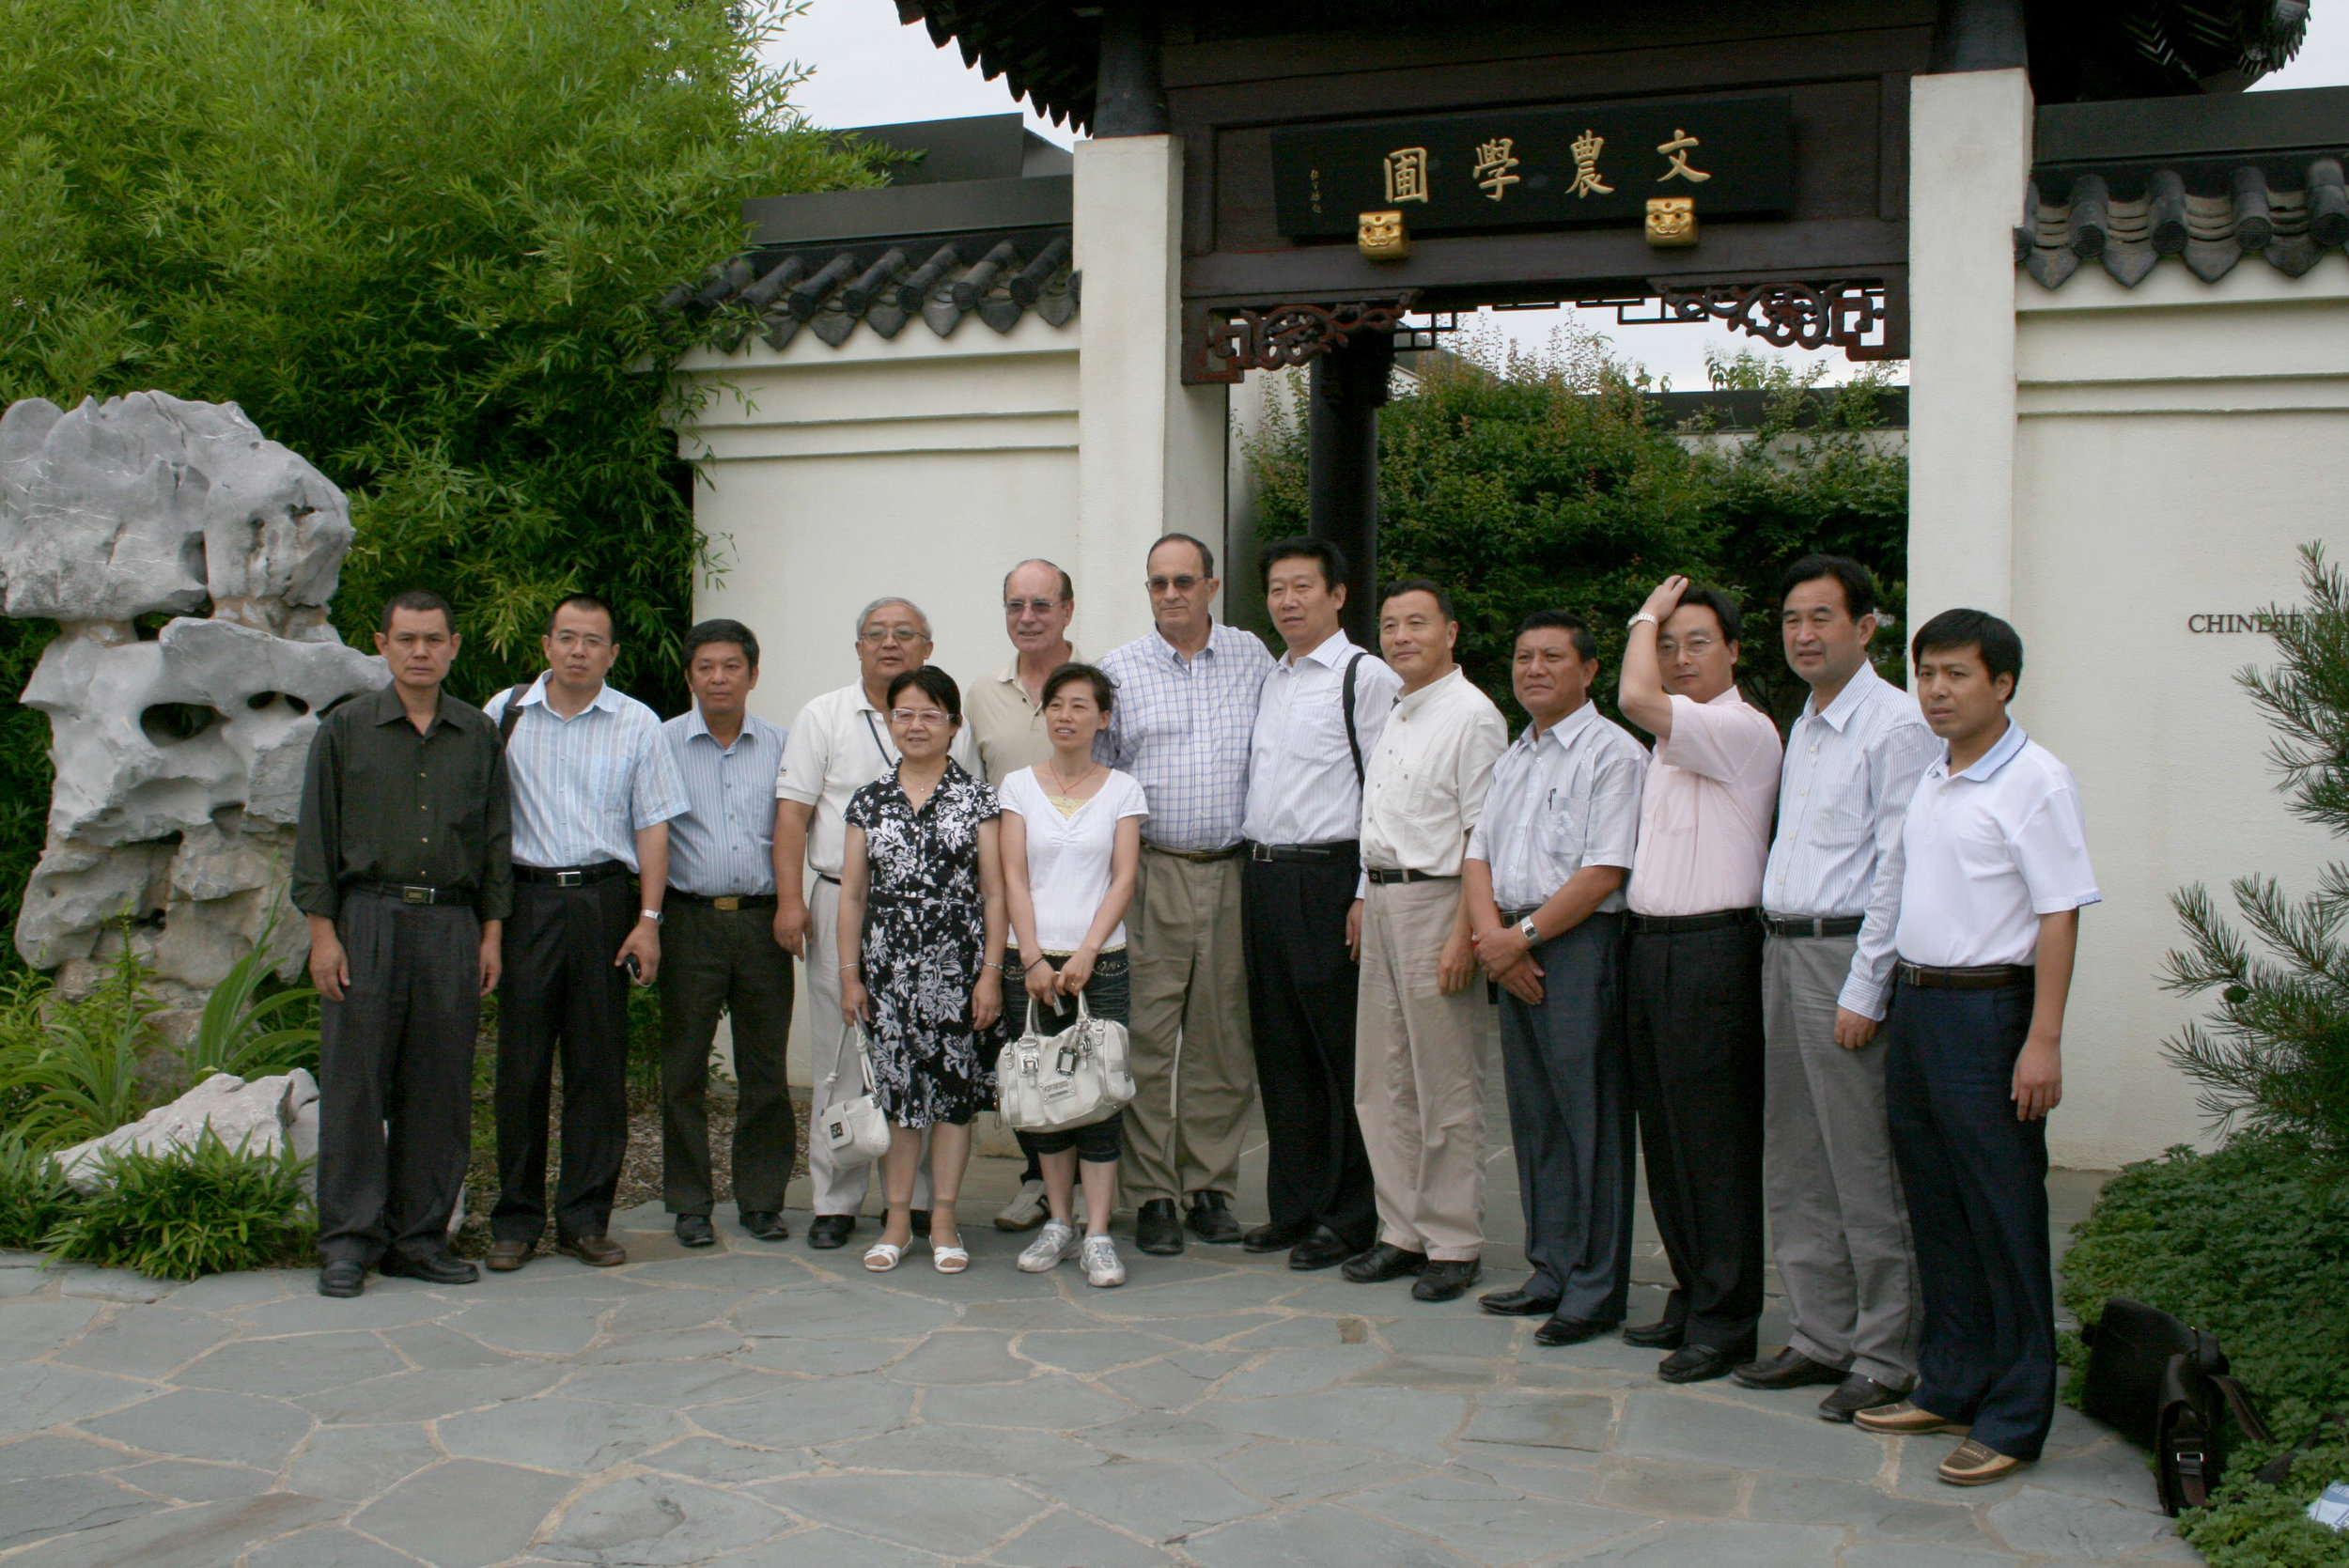 Copy of Mr. Changbao Xin (center)